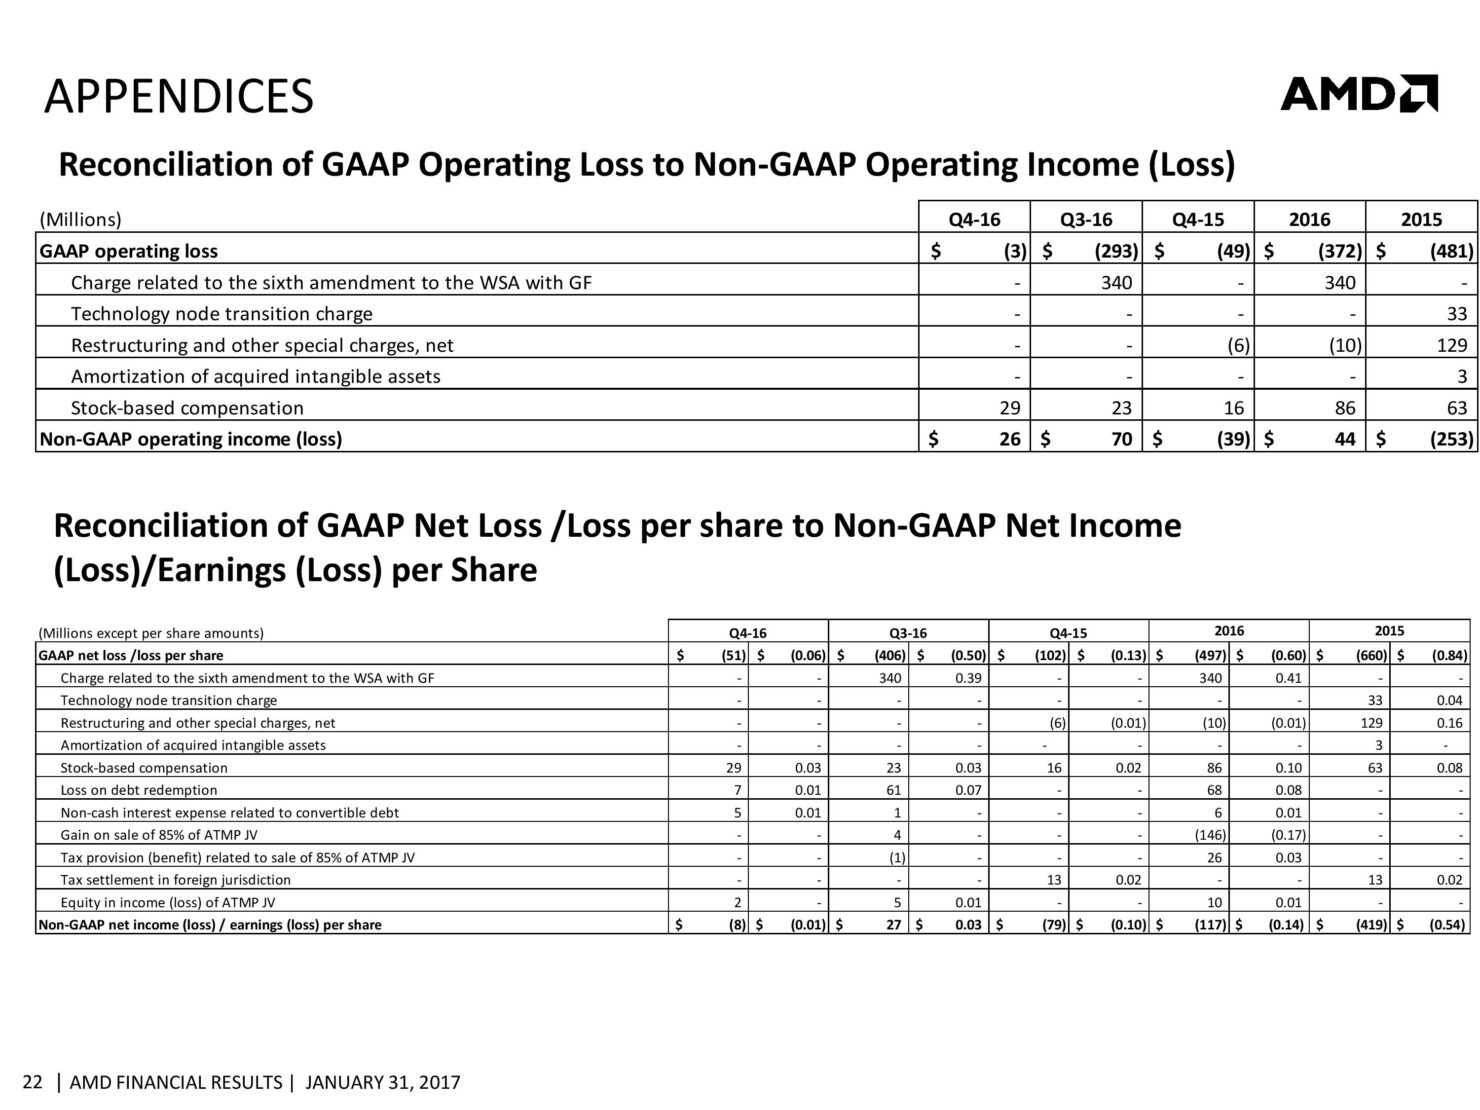 amd-cfo-commentary-slides-q4-16-page-022